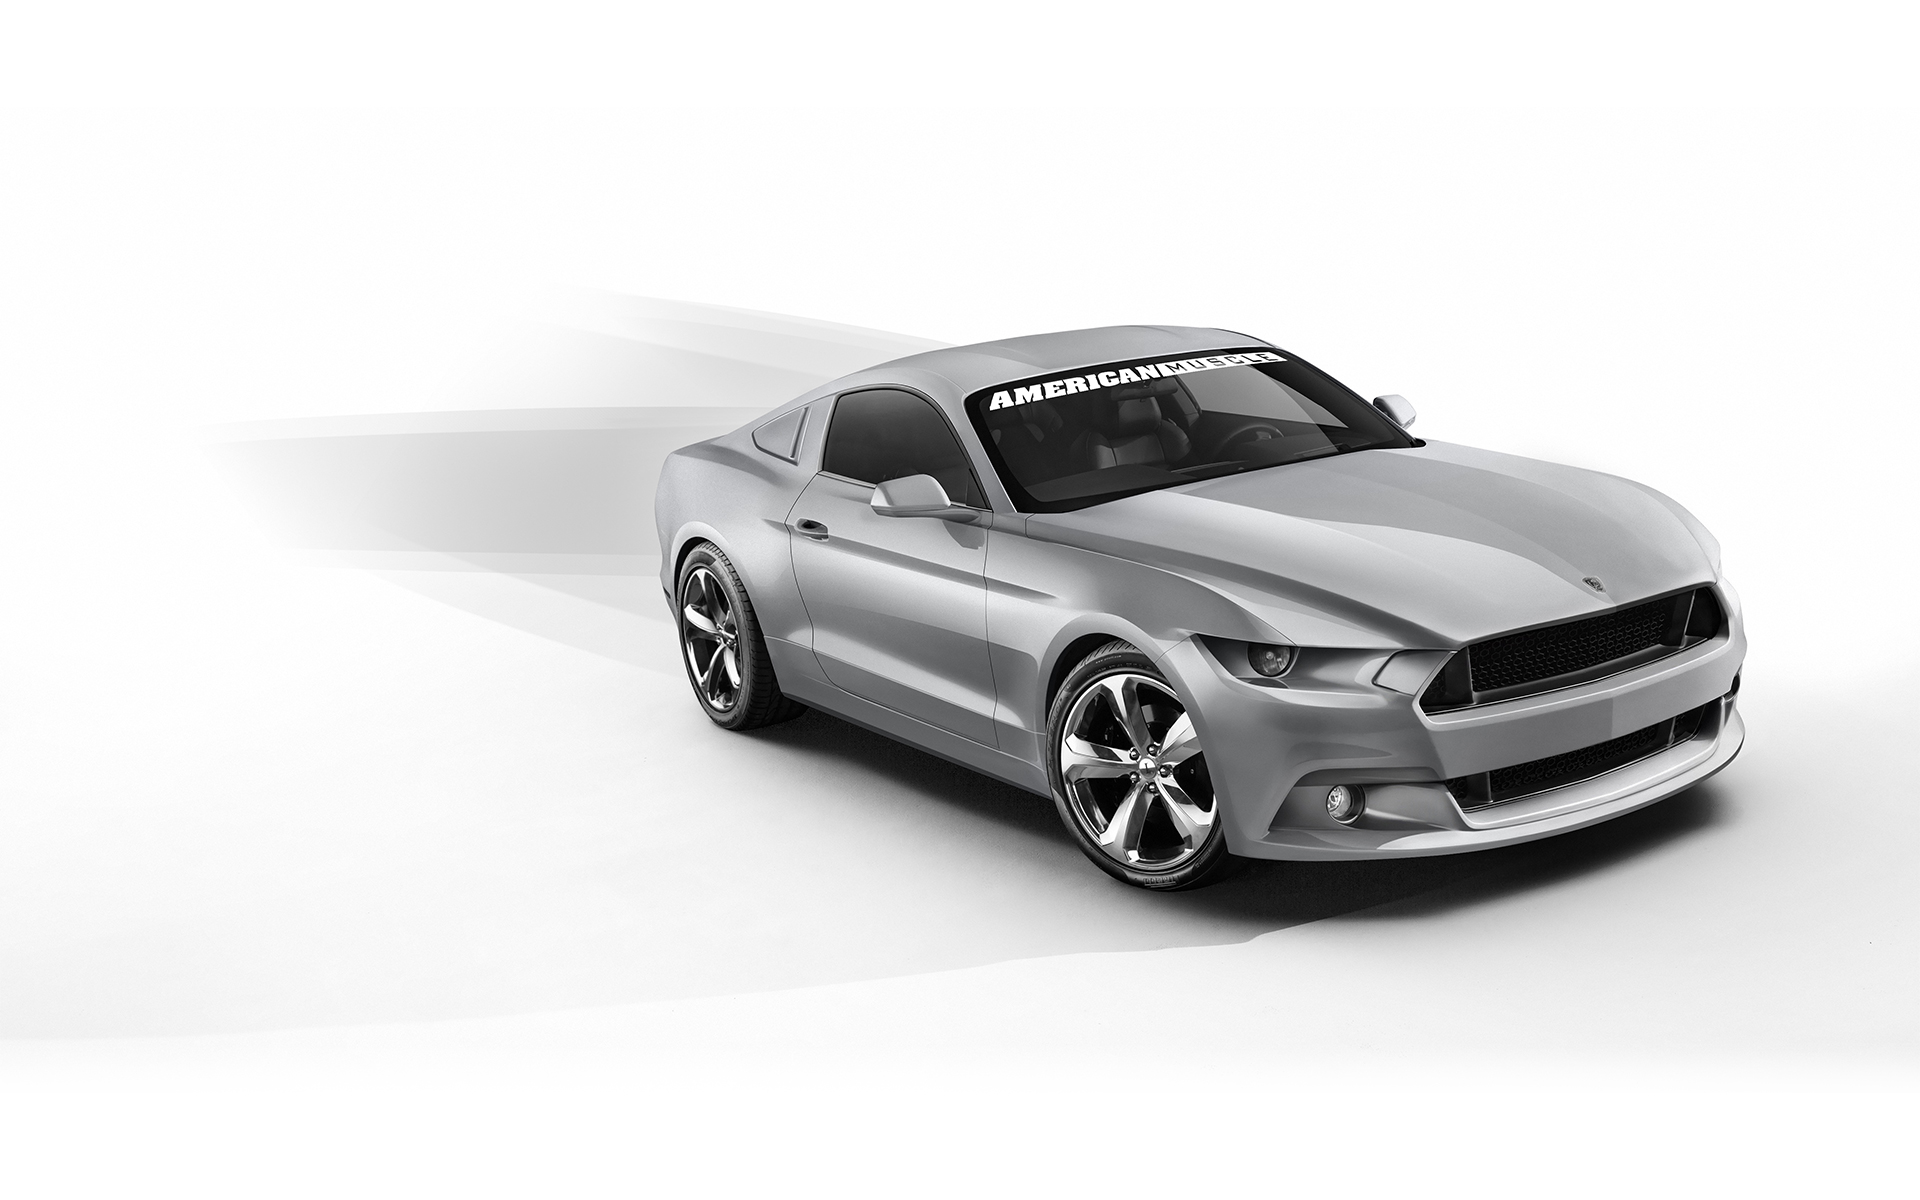 2015 Ford Mustang Rendered As Iconic Legends Autoevolution